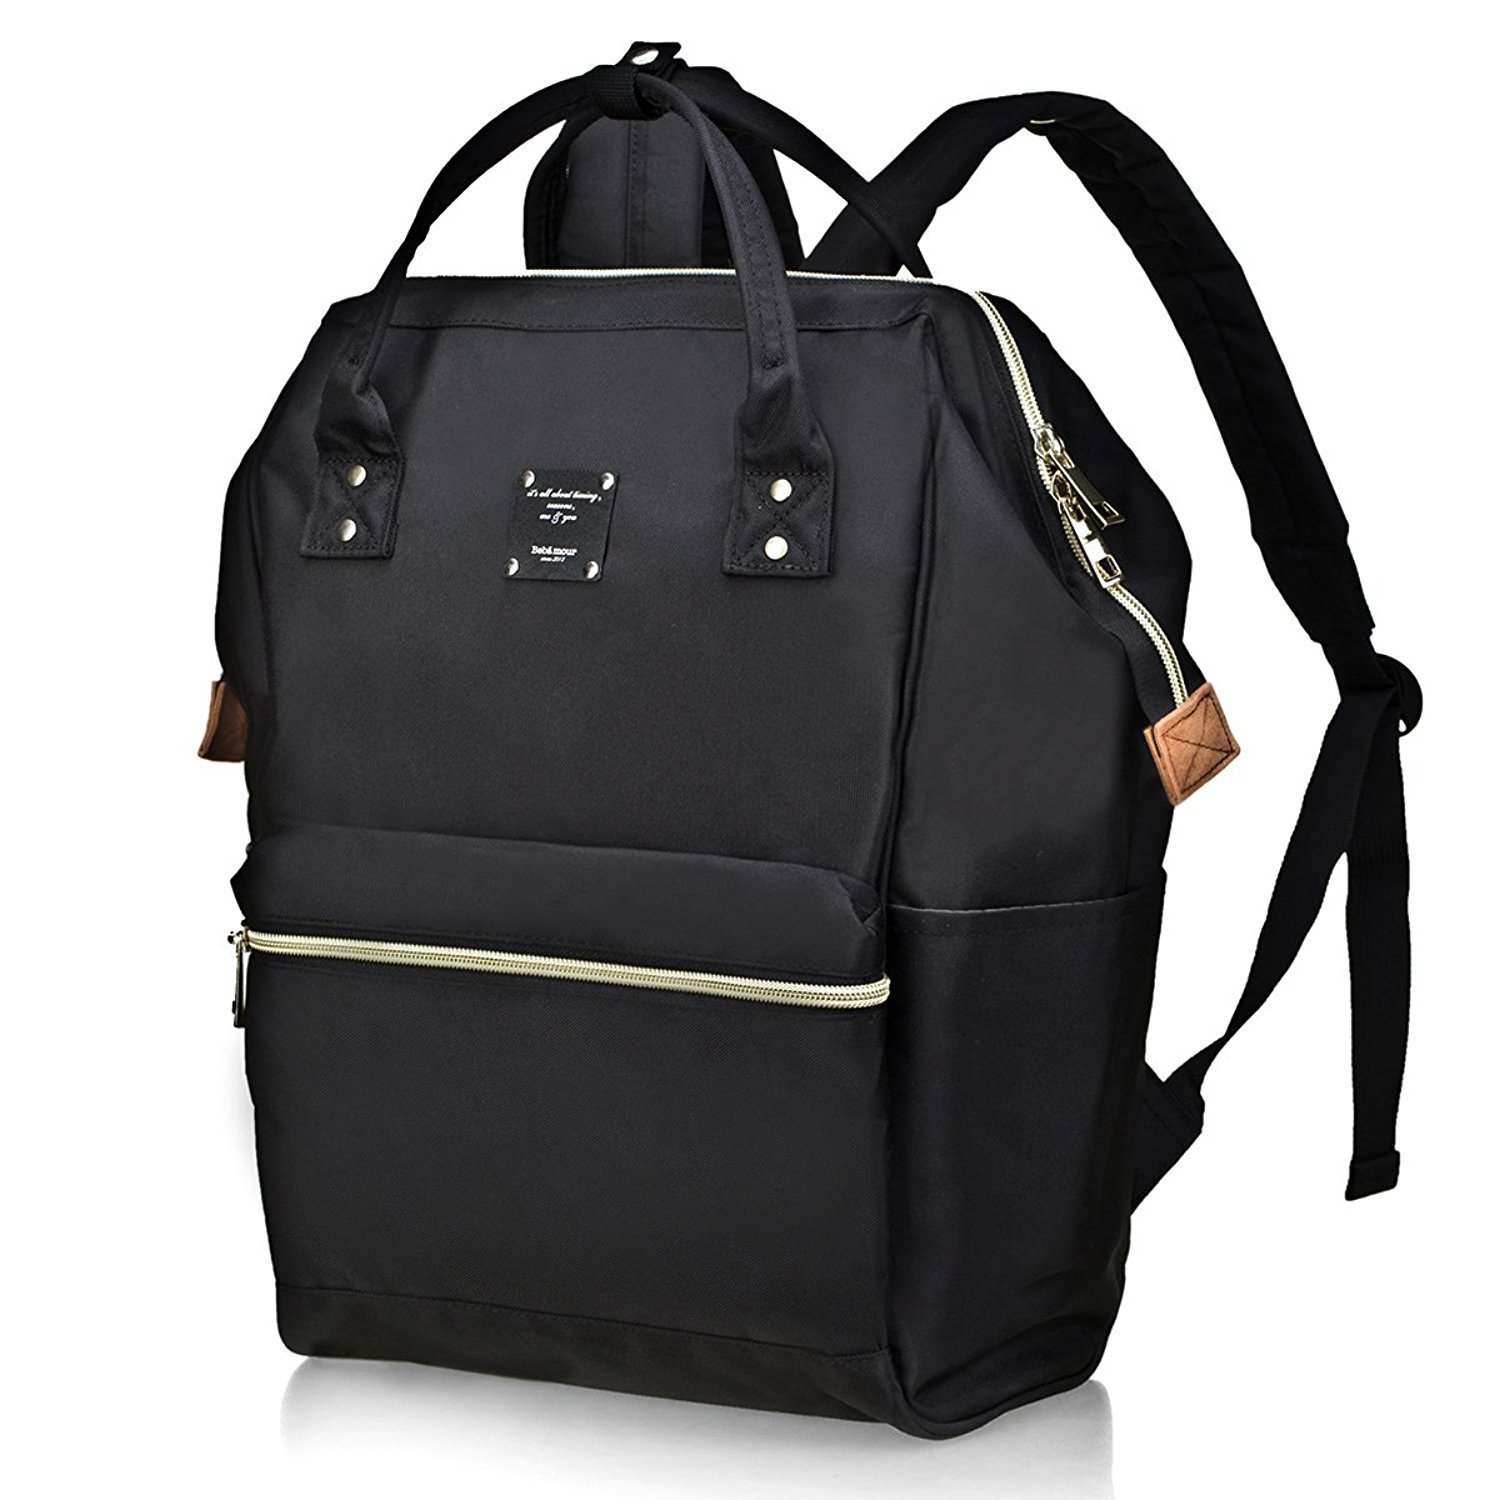 Bebamour Casual College Backpack Lightweight Travel Wide Open Back to School Backpack for Women&Men(Black) by Bebamour